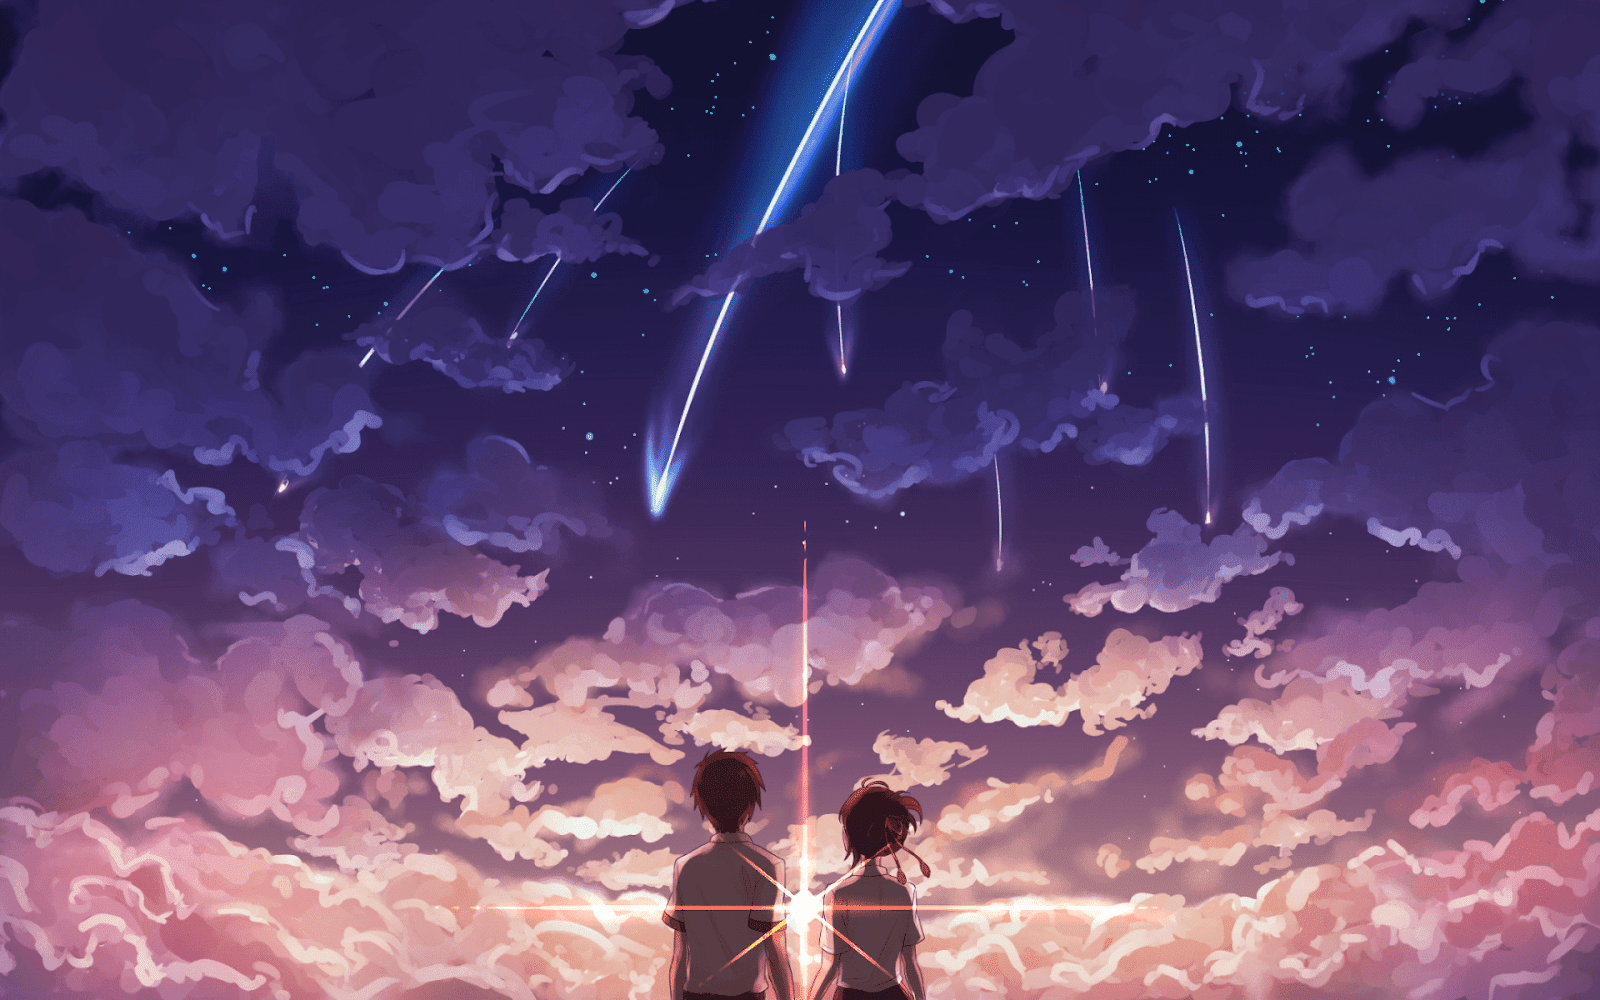 AowVN%2B%252824%2529 - [ Hình Nền ] Anime Your Name. - Kimi no Nawa full HD cực đẹp | Anime Wallpaper